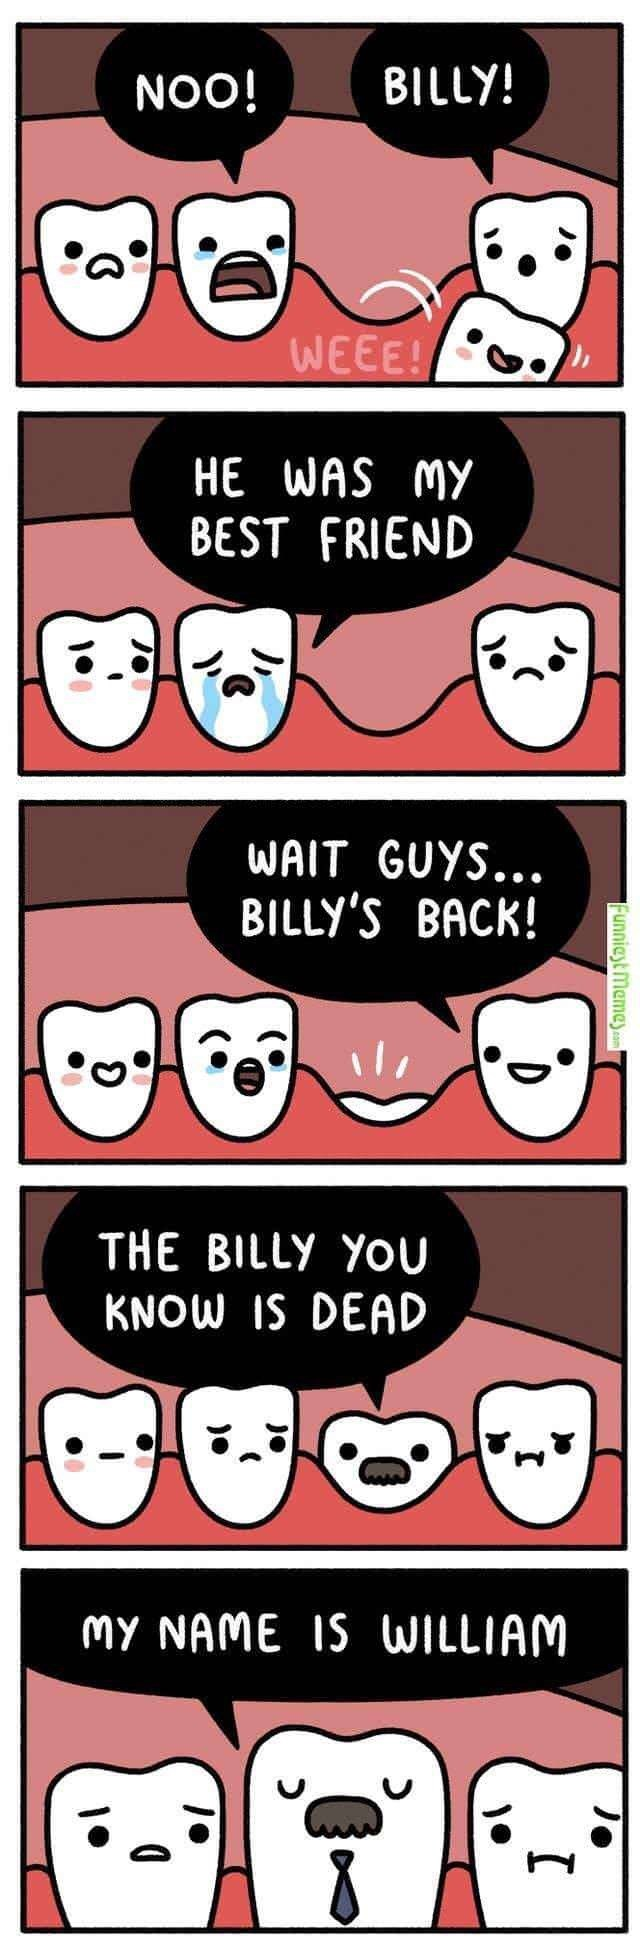 Comic about someone losing a tooth named Billy; the other teeth are sad but then Billy grows back as William""